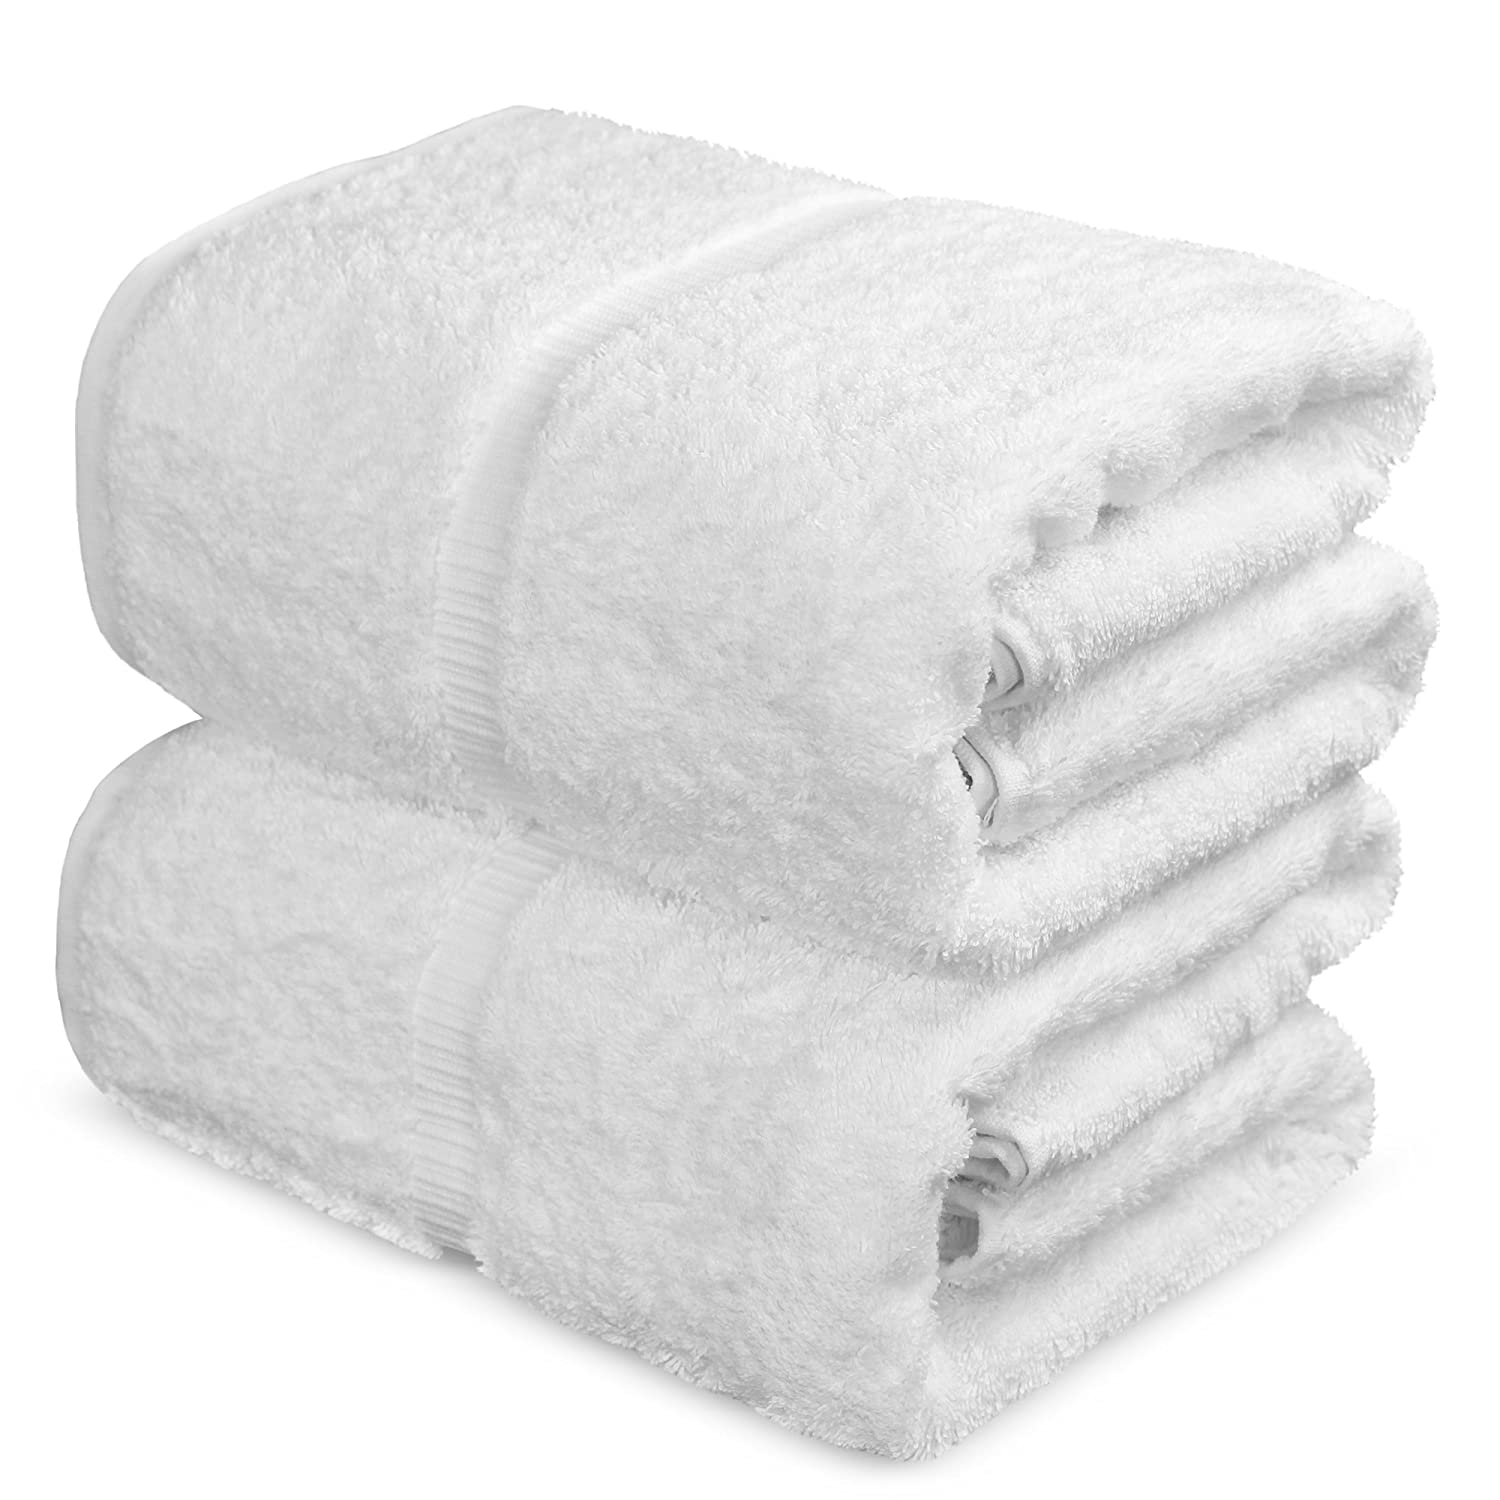 Towel Bazaar 100% Turkish Cotton Bath Sheets, 700 GSM, 35 x 70 Inch, Eco-Friendly (2 Pack, White)